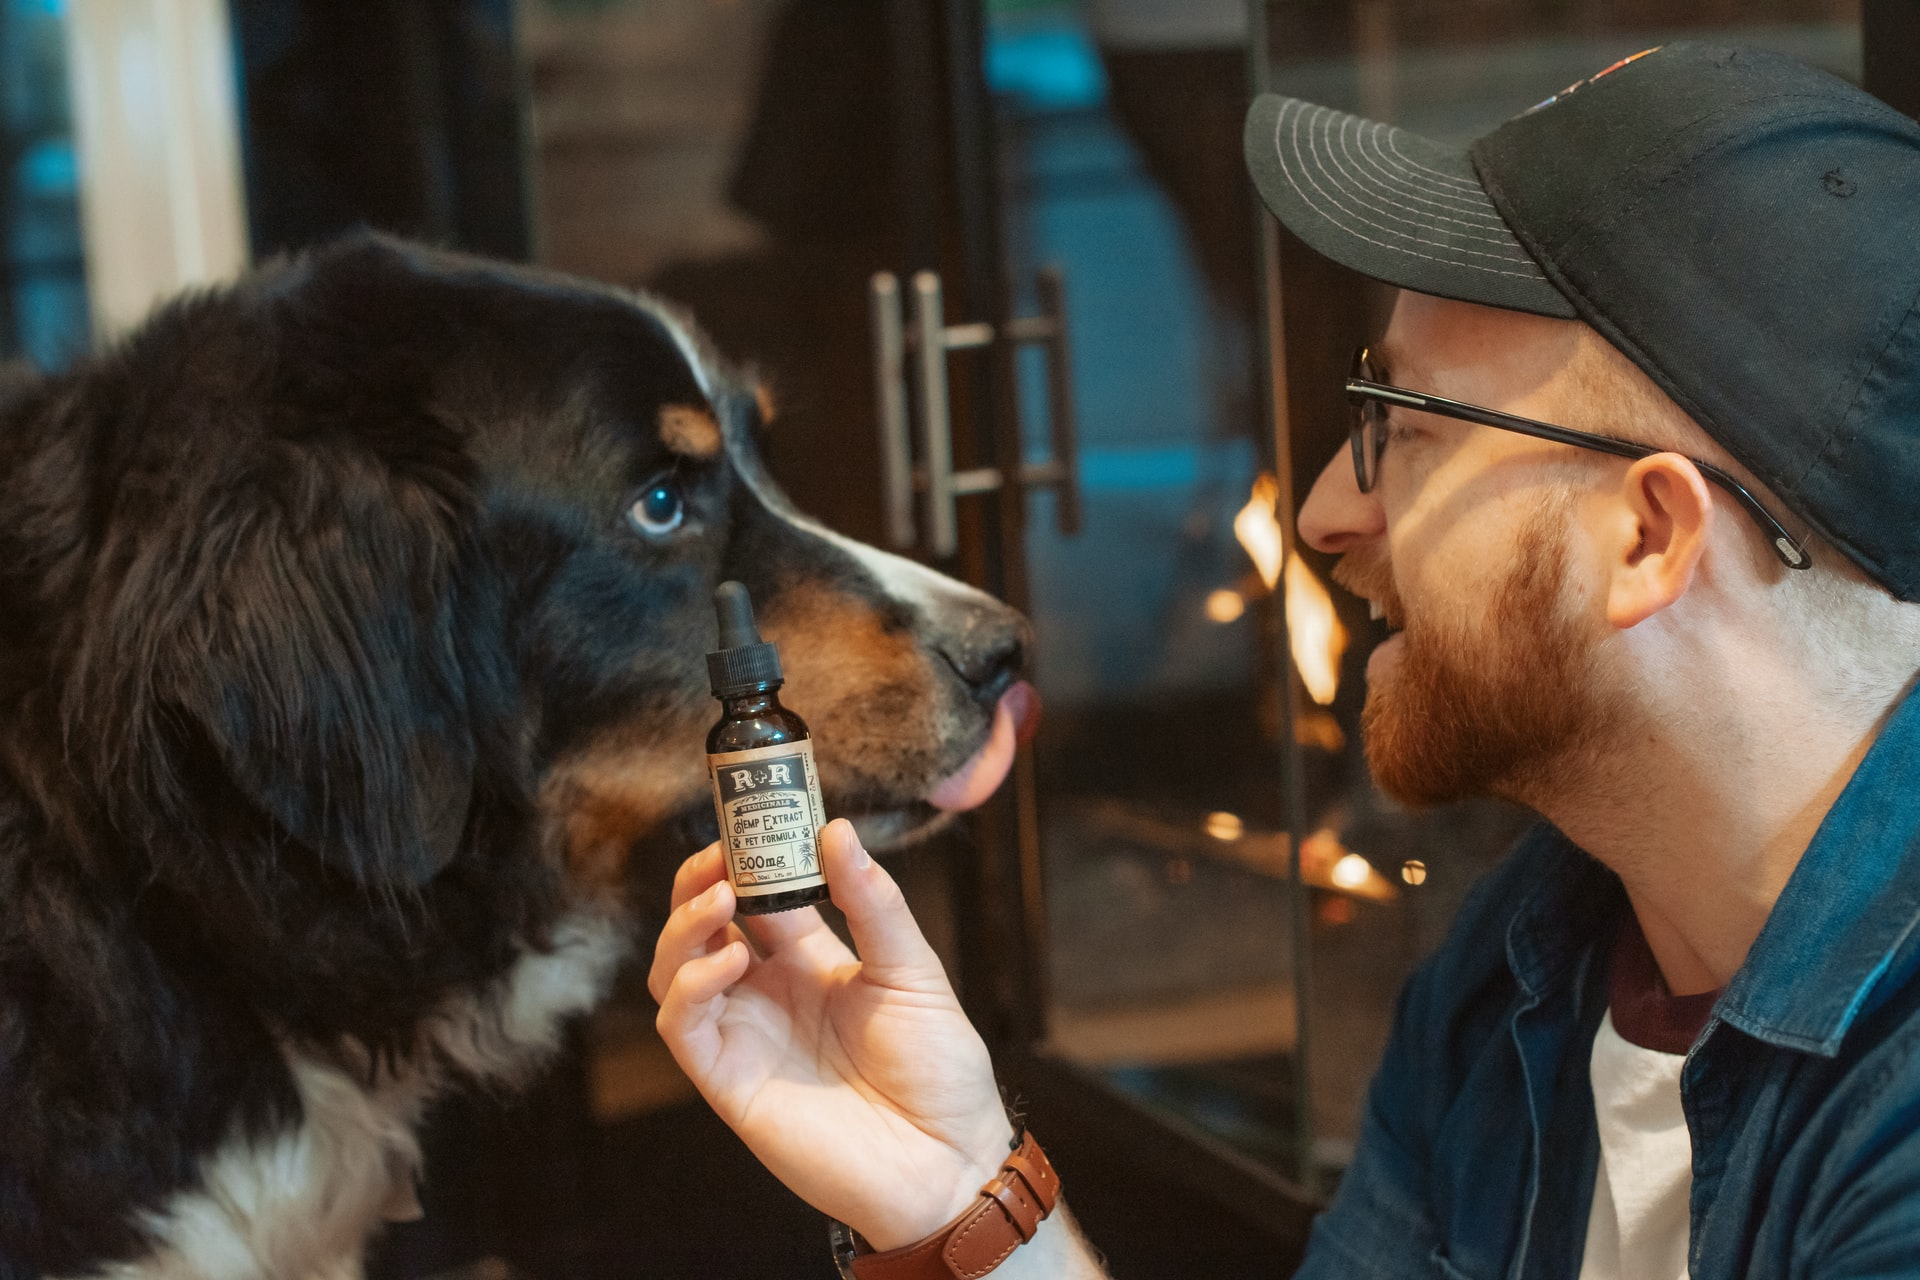 Owner giving his dog CBD drops